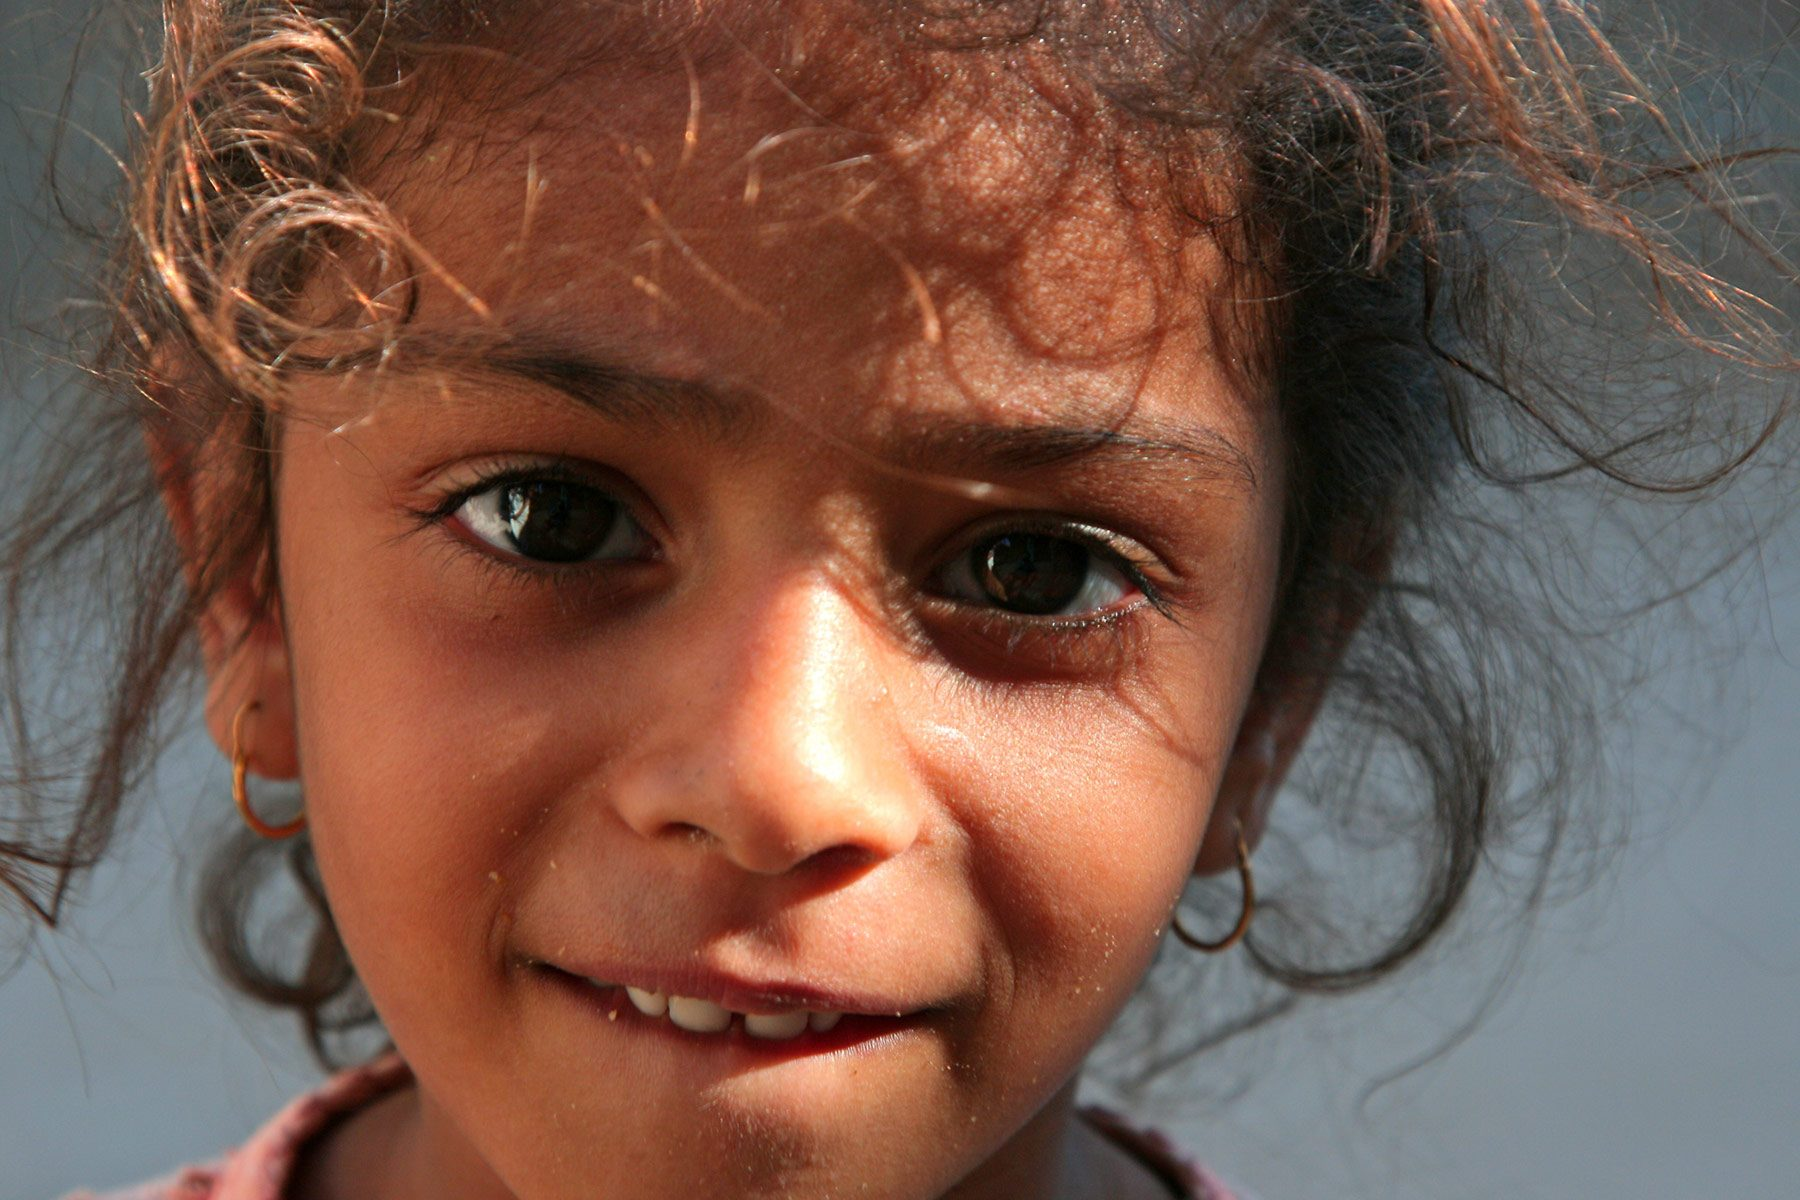 Face of young Egyptian girl. Credit: Richard Messenger on Flickr.